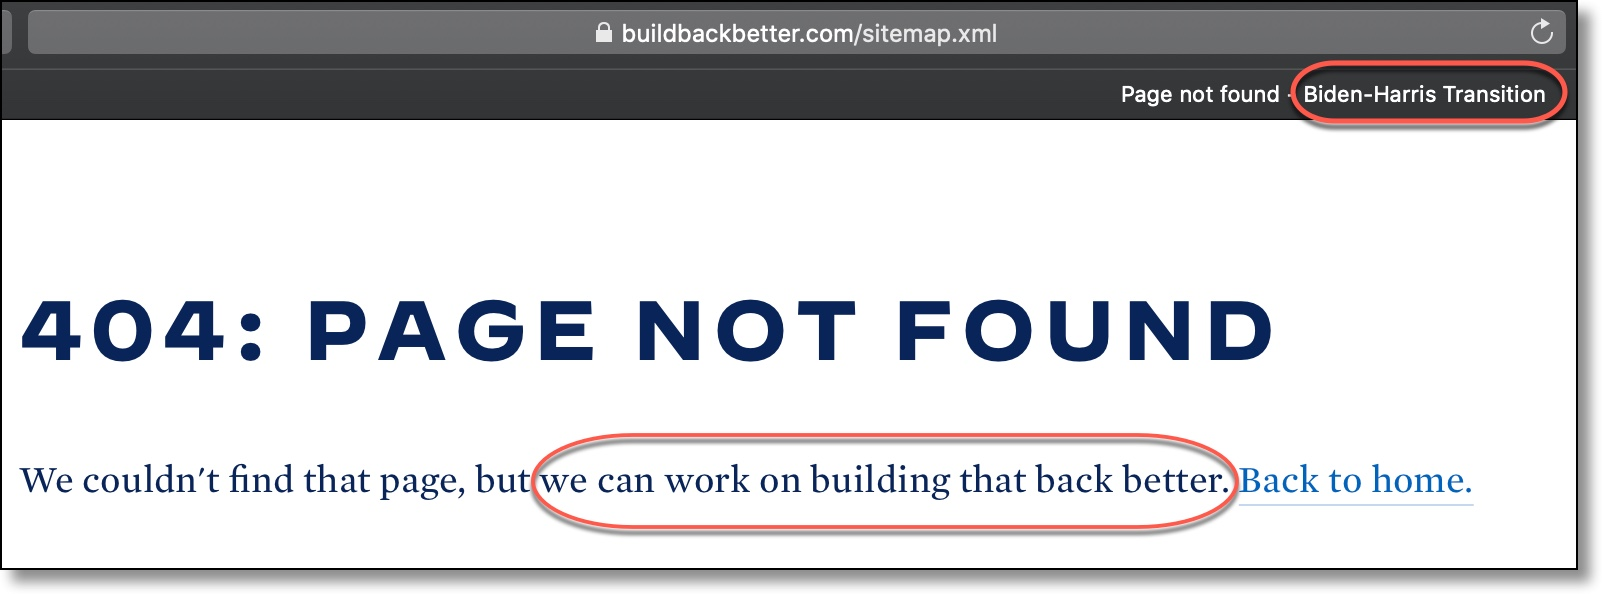 Biden Harris 404 Error Page Not Found